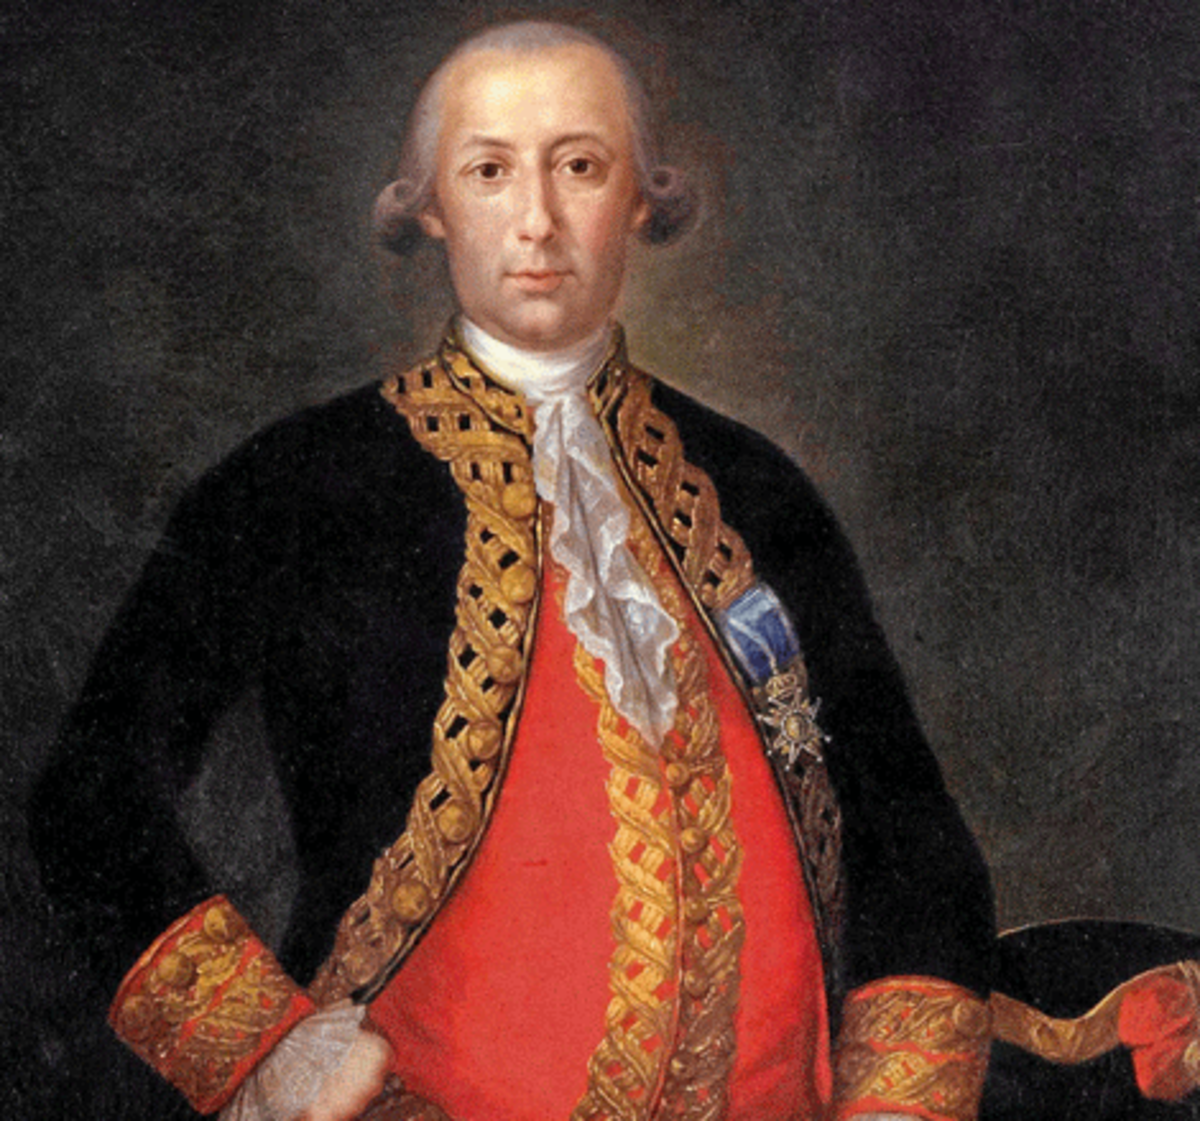 The Spanish General Bernardo de Gálvez